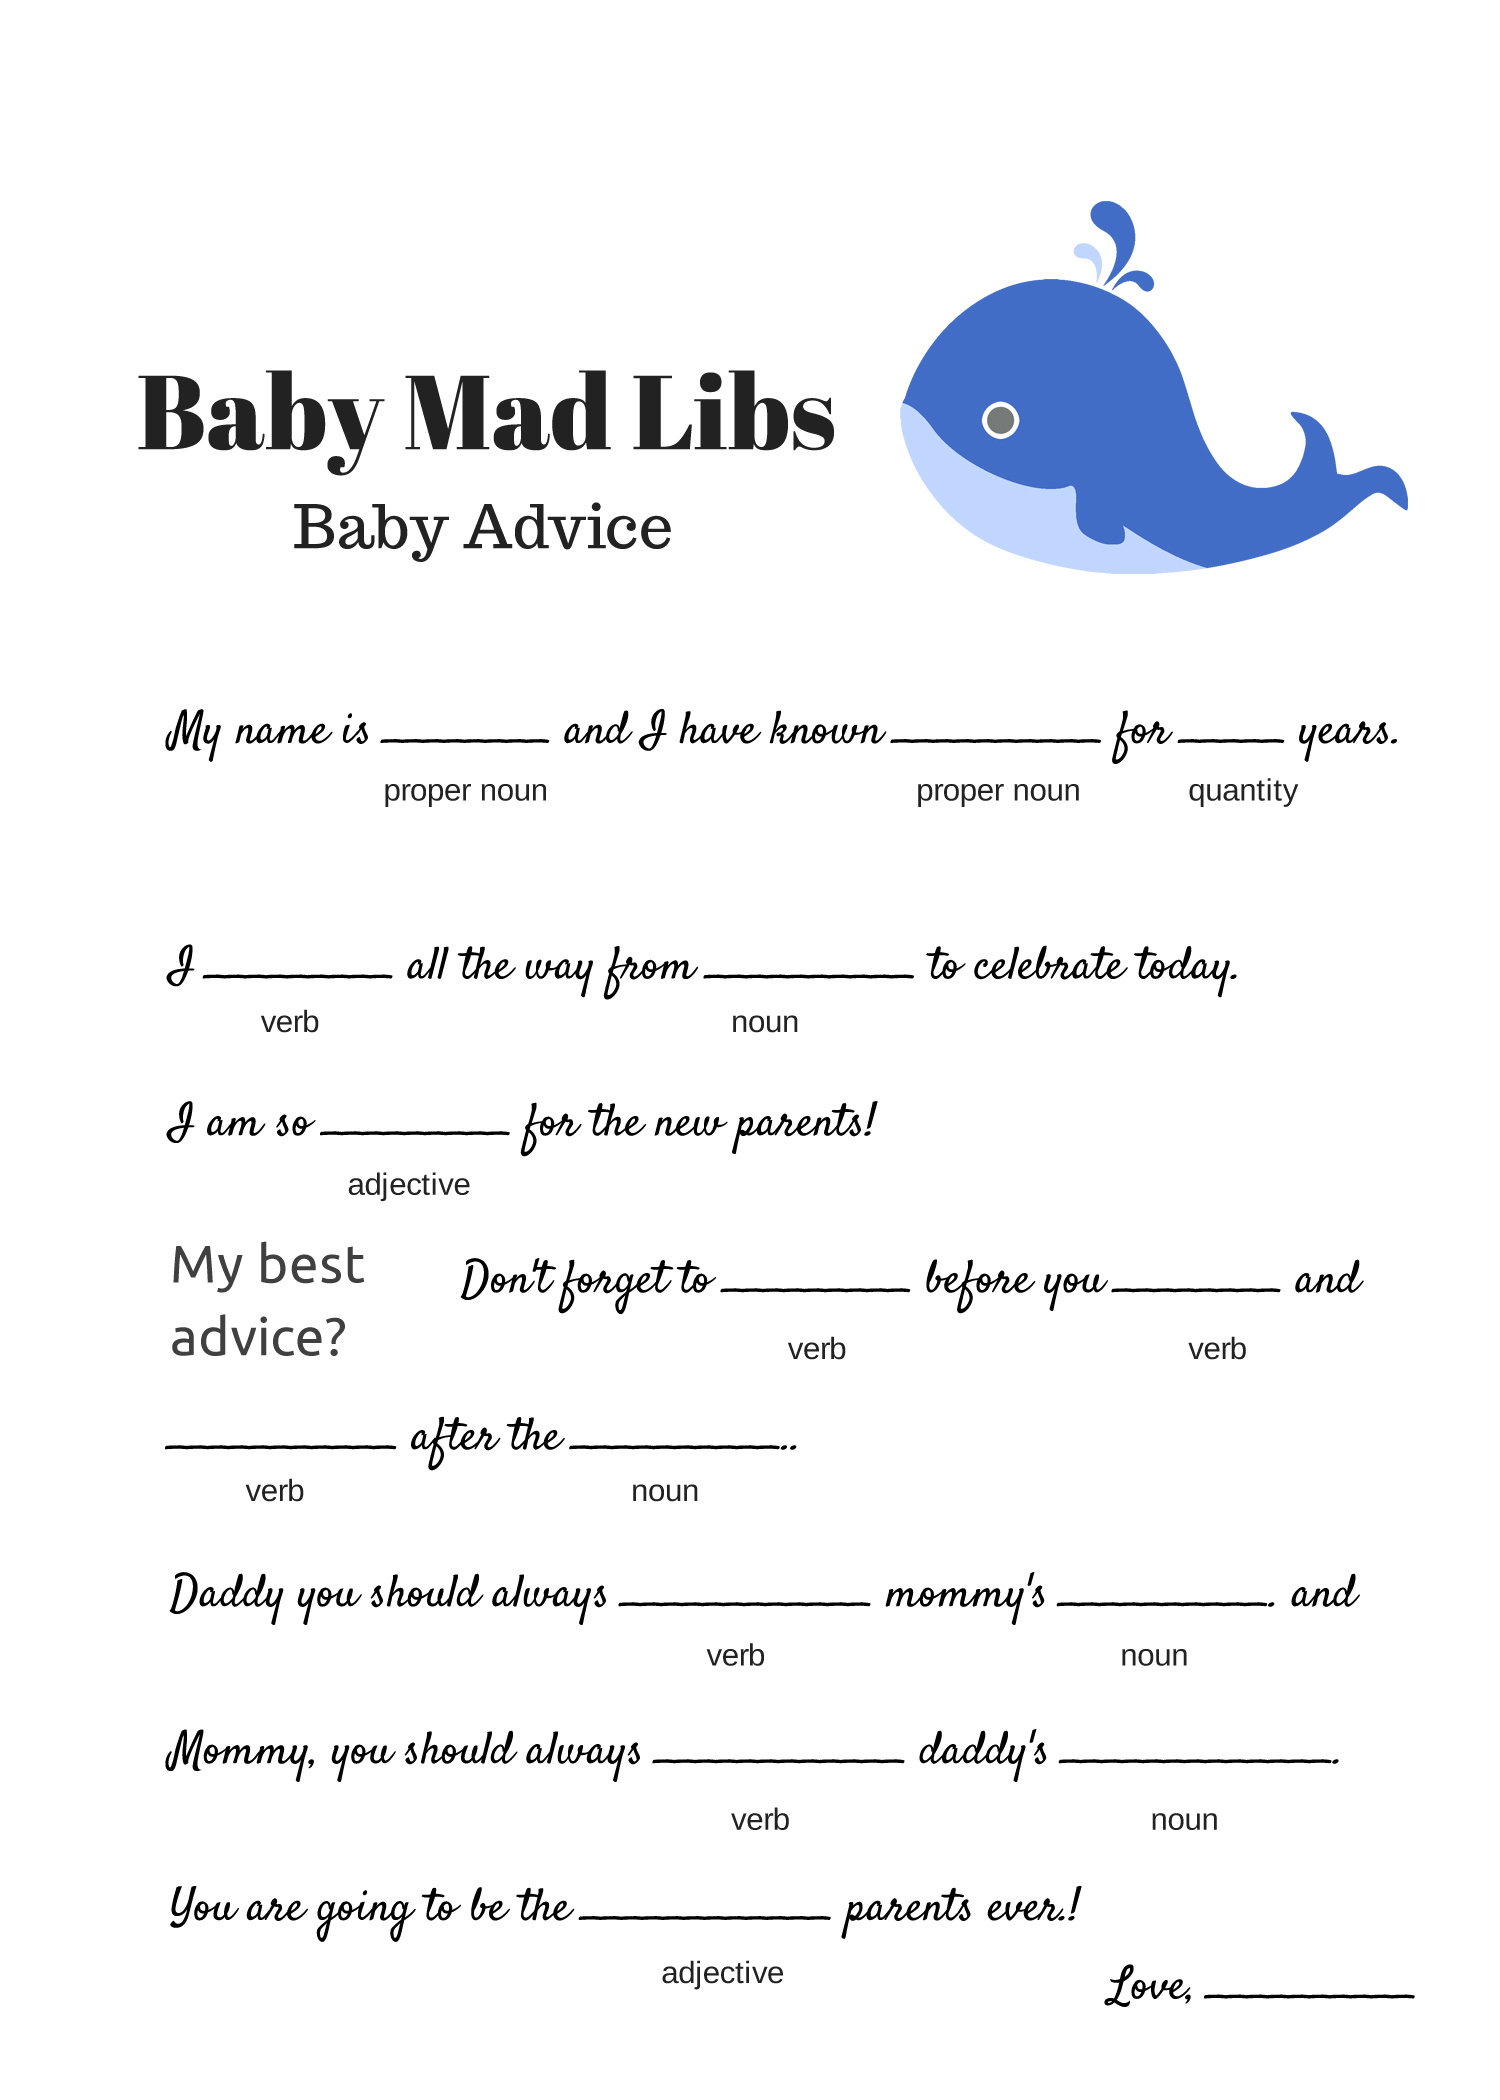 photograph regarding Mad Libs Online Printable Free called Free of charge Youngster Insane Libs Video game - Youngster Information - Youngster Shower Options